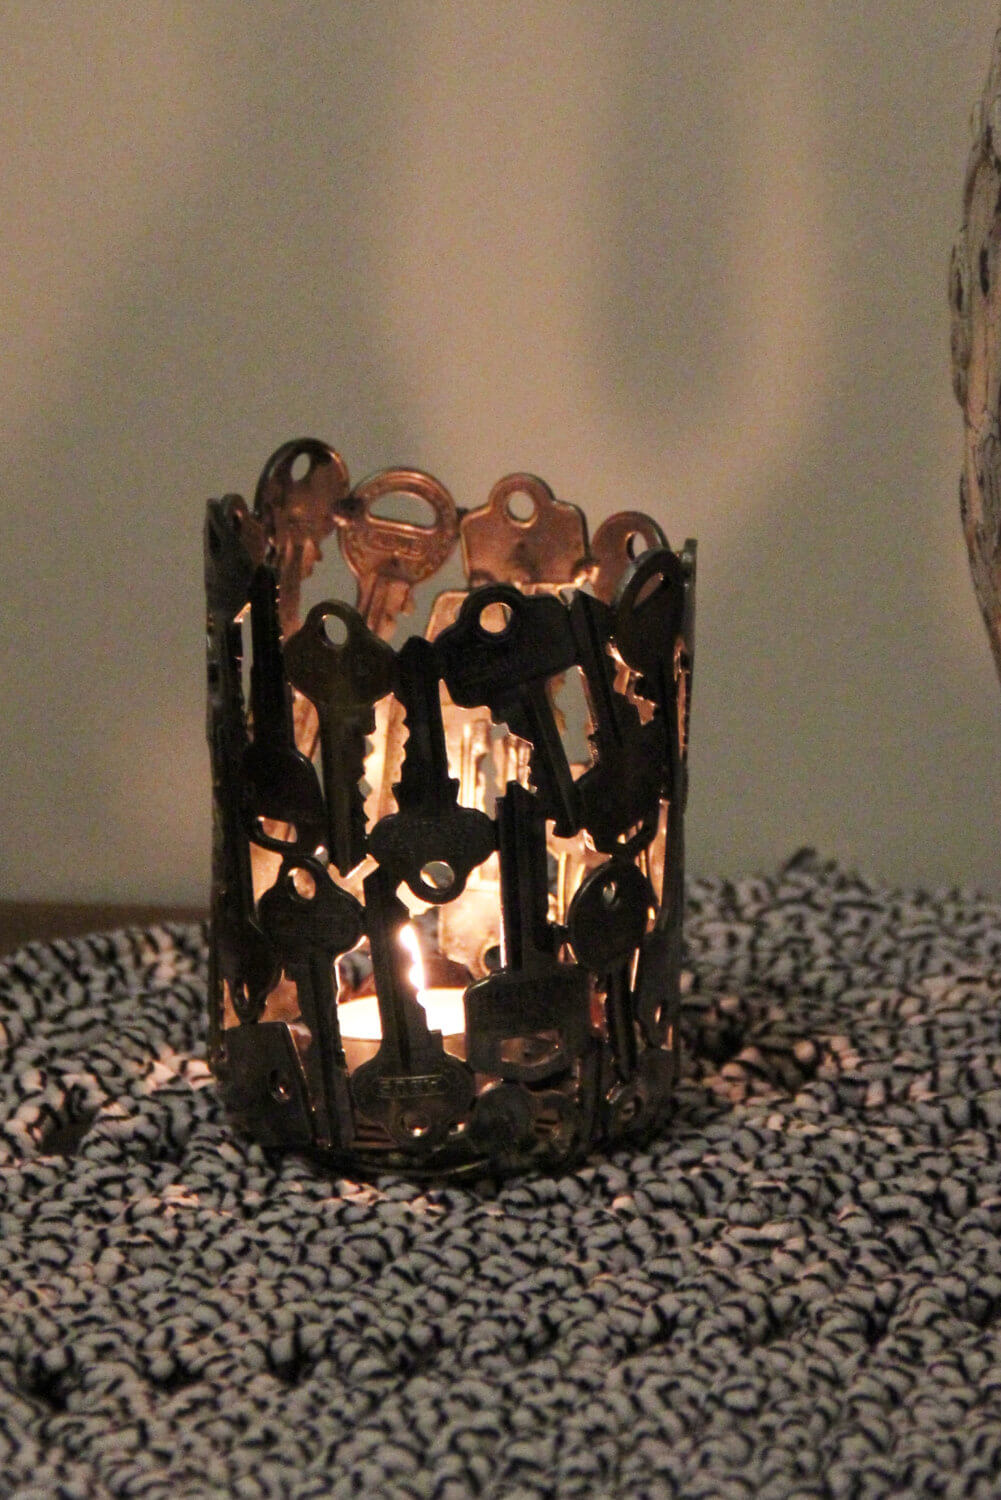 Decorative Votive Holder Made of Old Keys